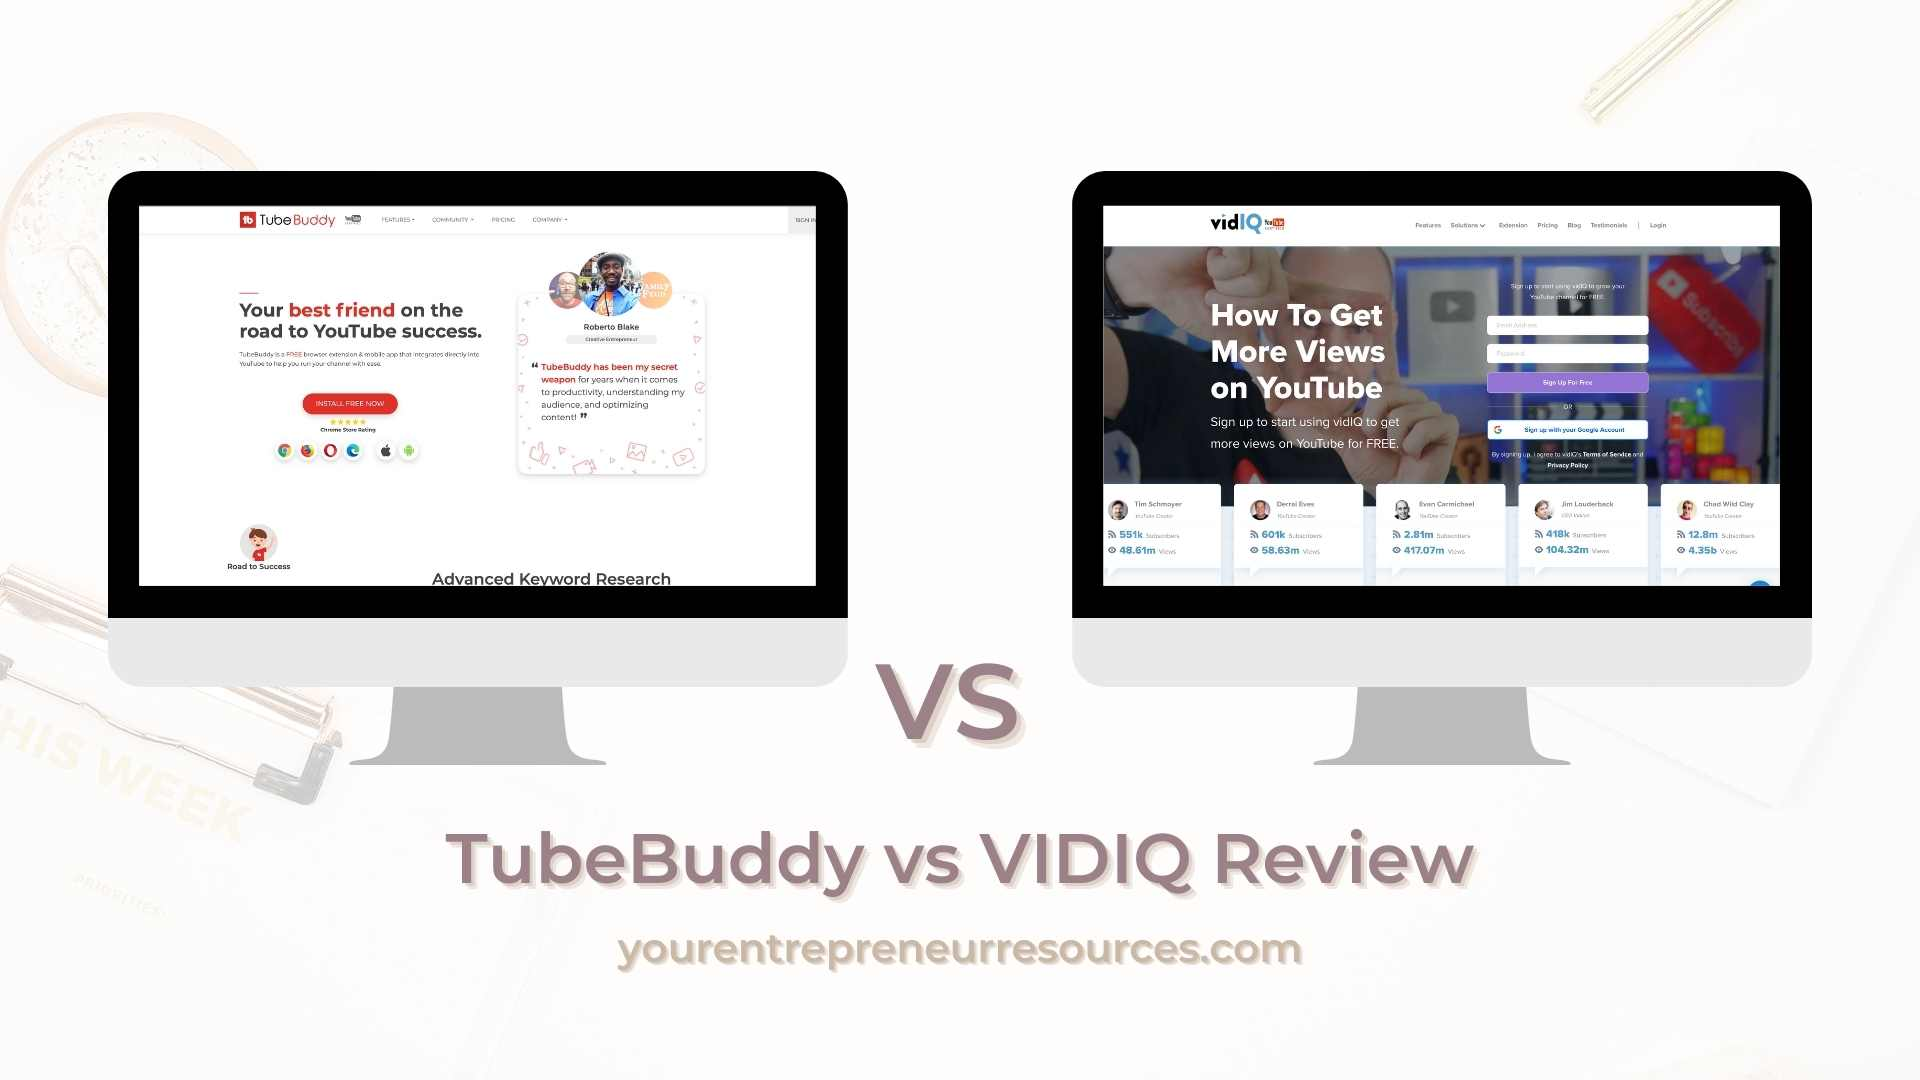 TubeBuddy vs VIDIQ Review Which Tool is Best for Expanding your YouTube Reach?